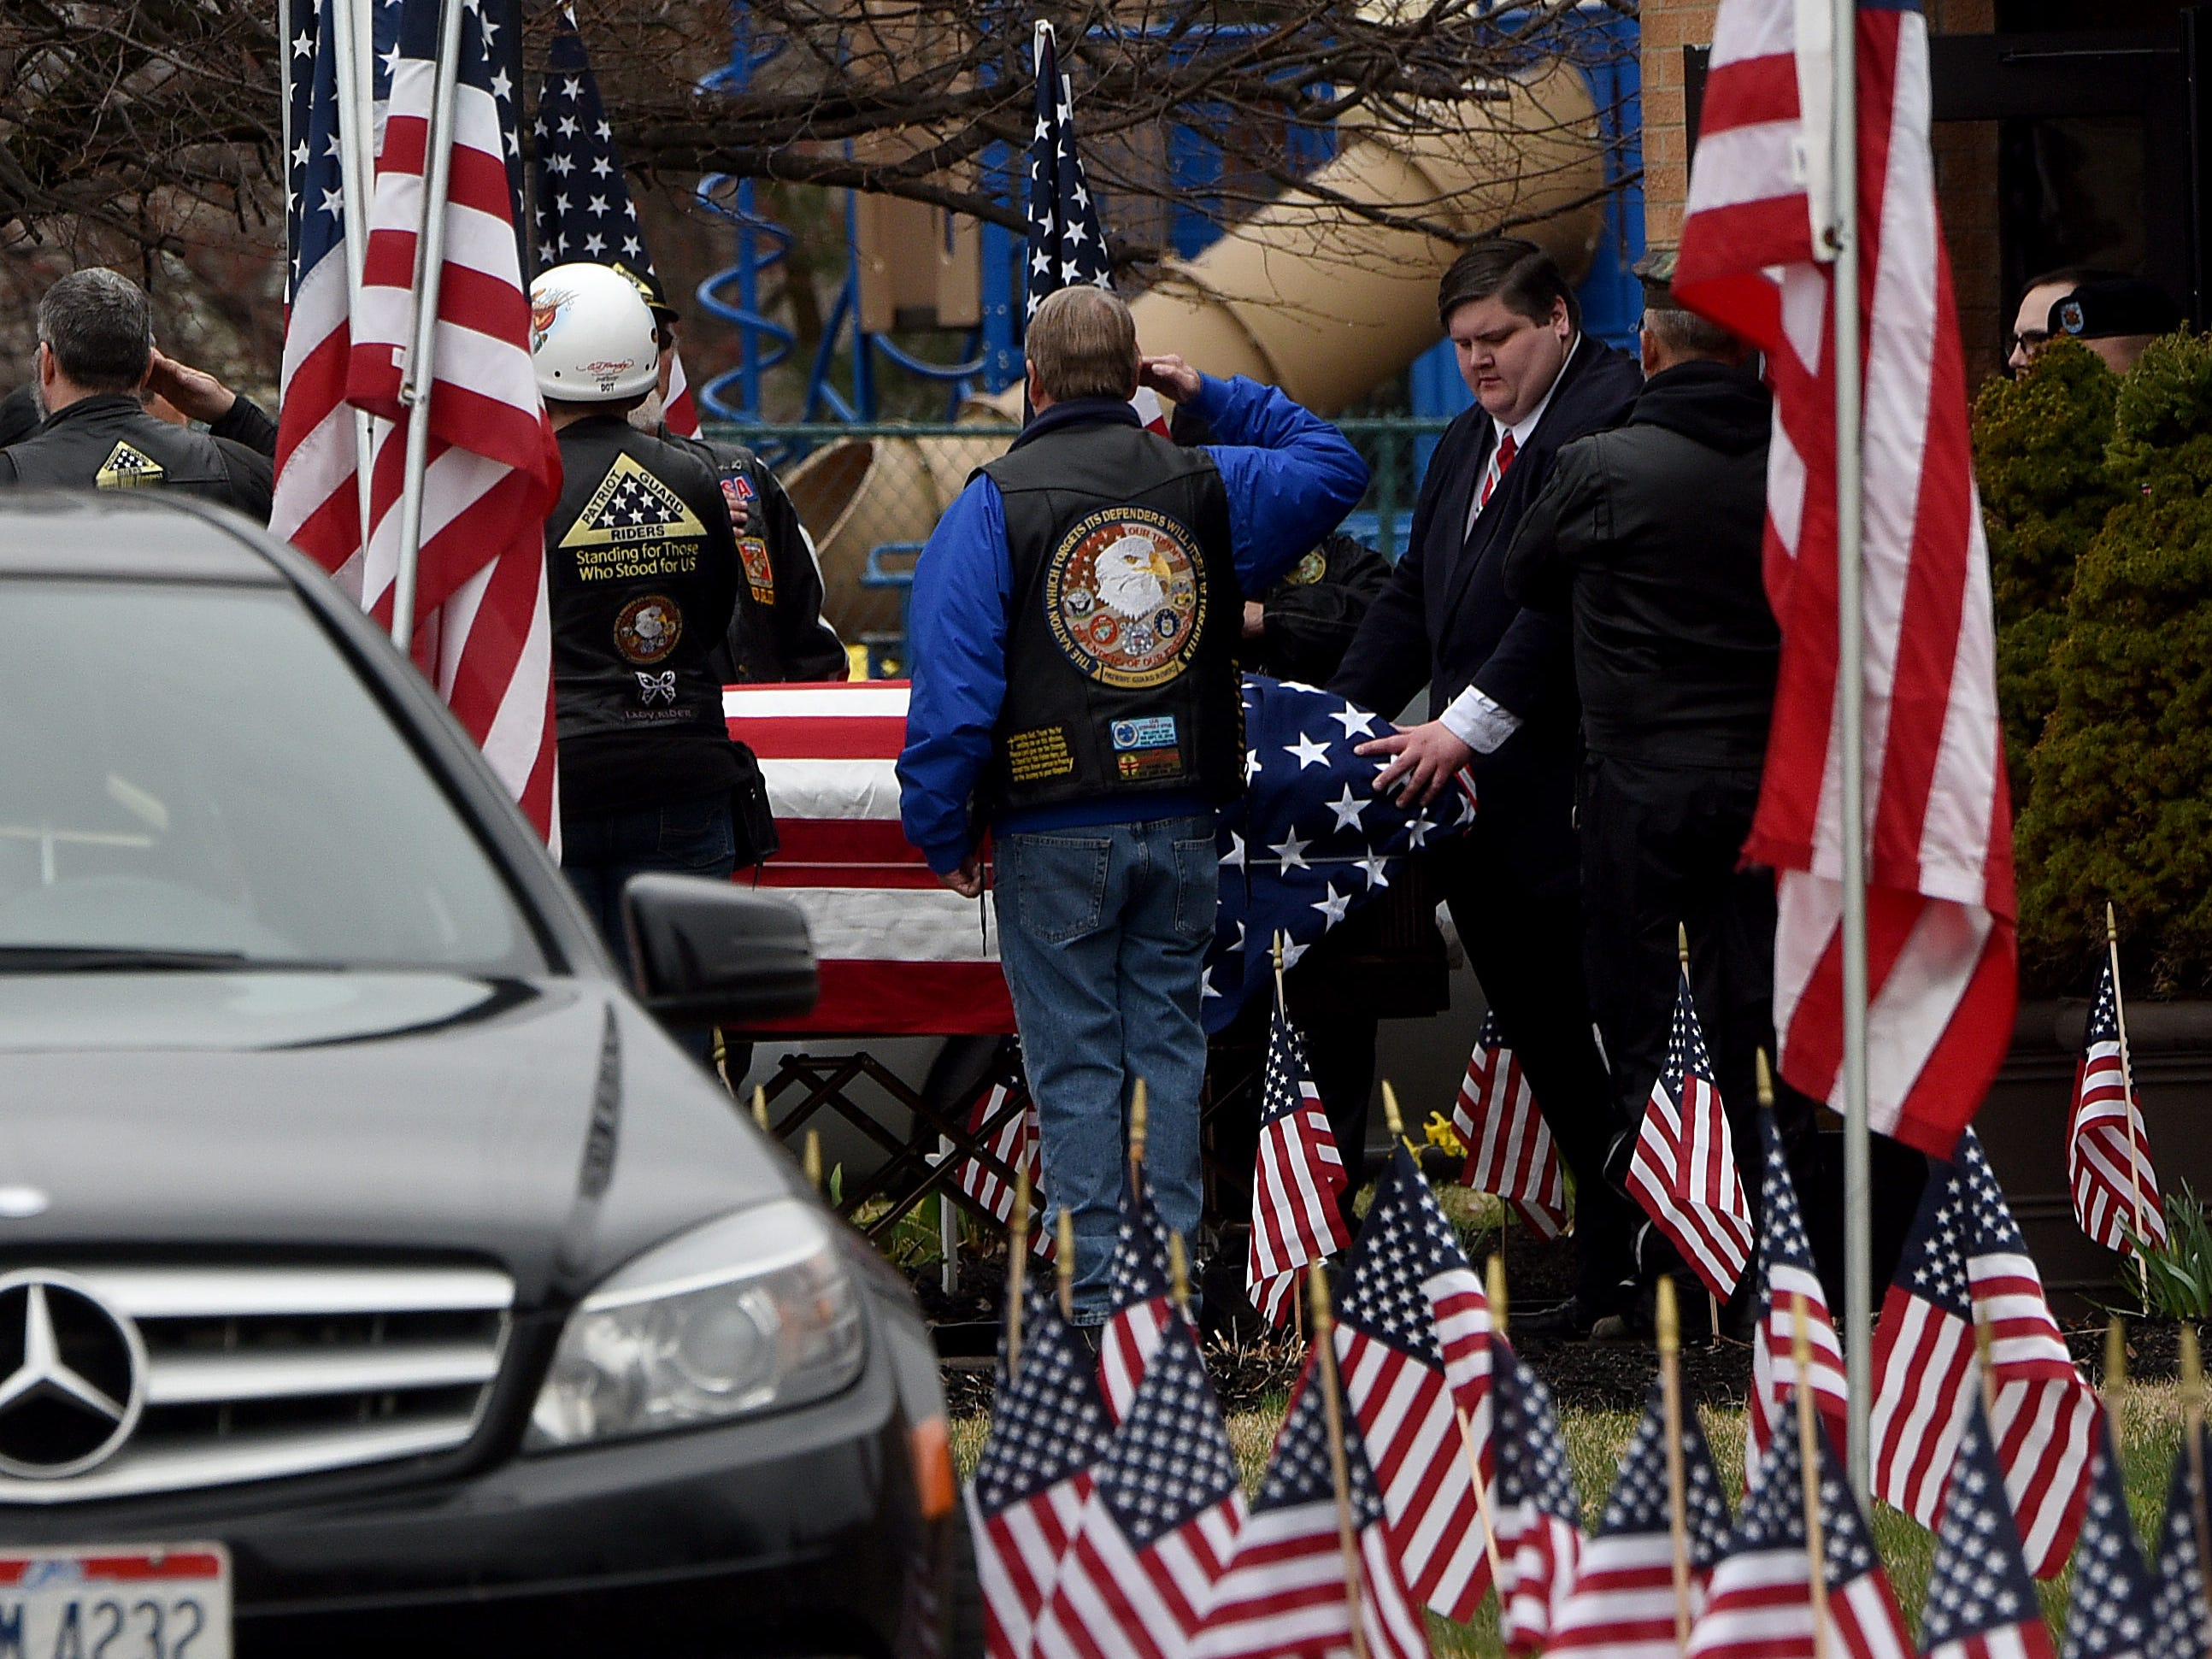 Pallbearers carry Sgt. Joseph Collette's casket after funeral services on Friday, April 5, 2019 at Faith Memorial Church in Lancaster. Collette was killed in action in Afghanistan last month.